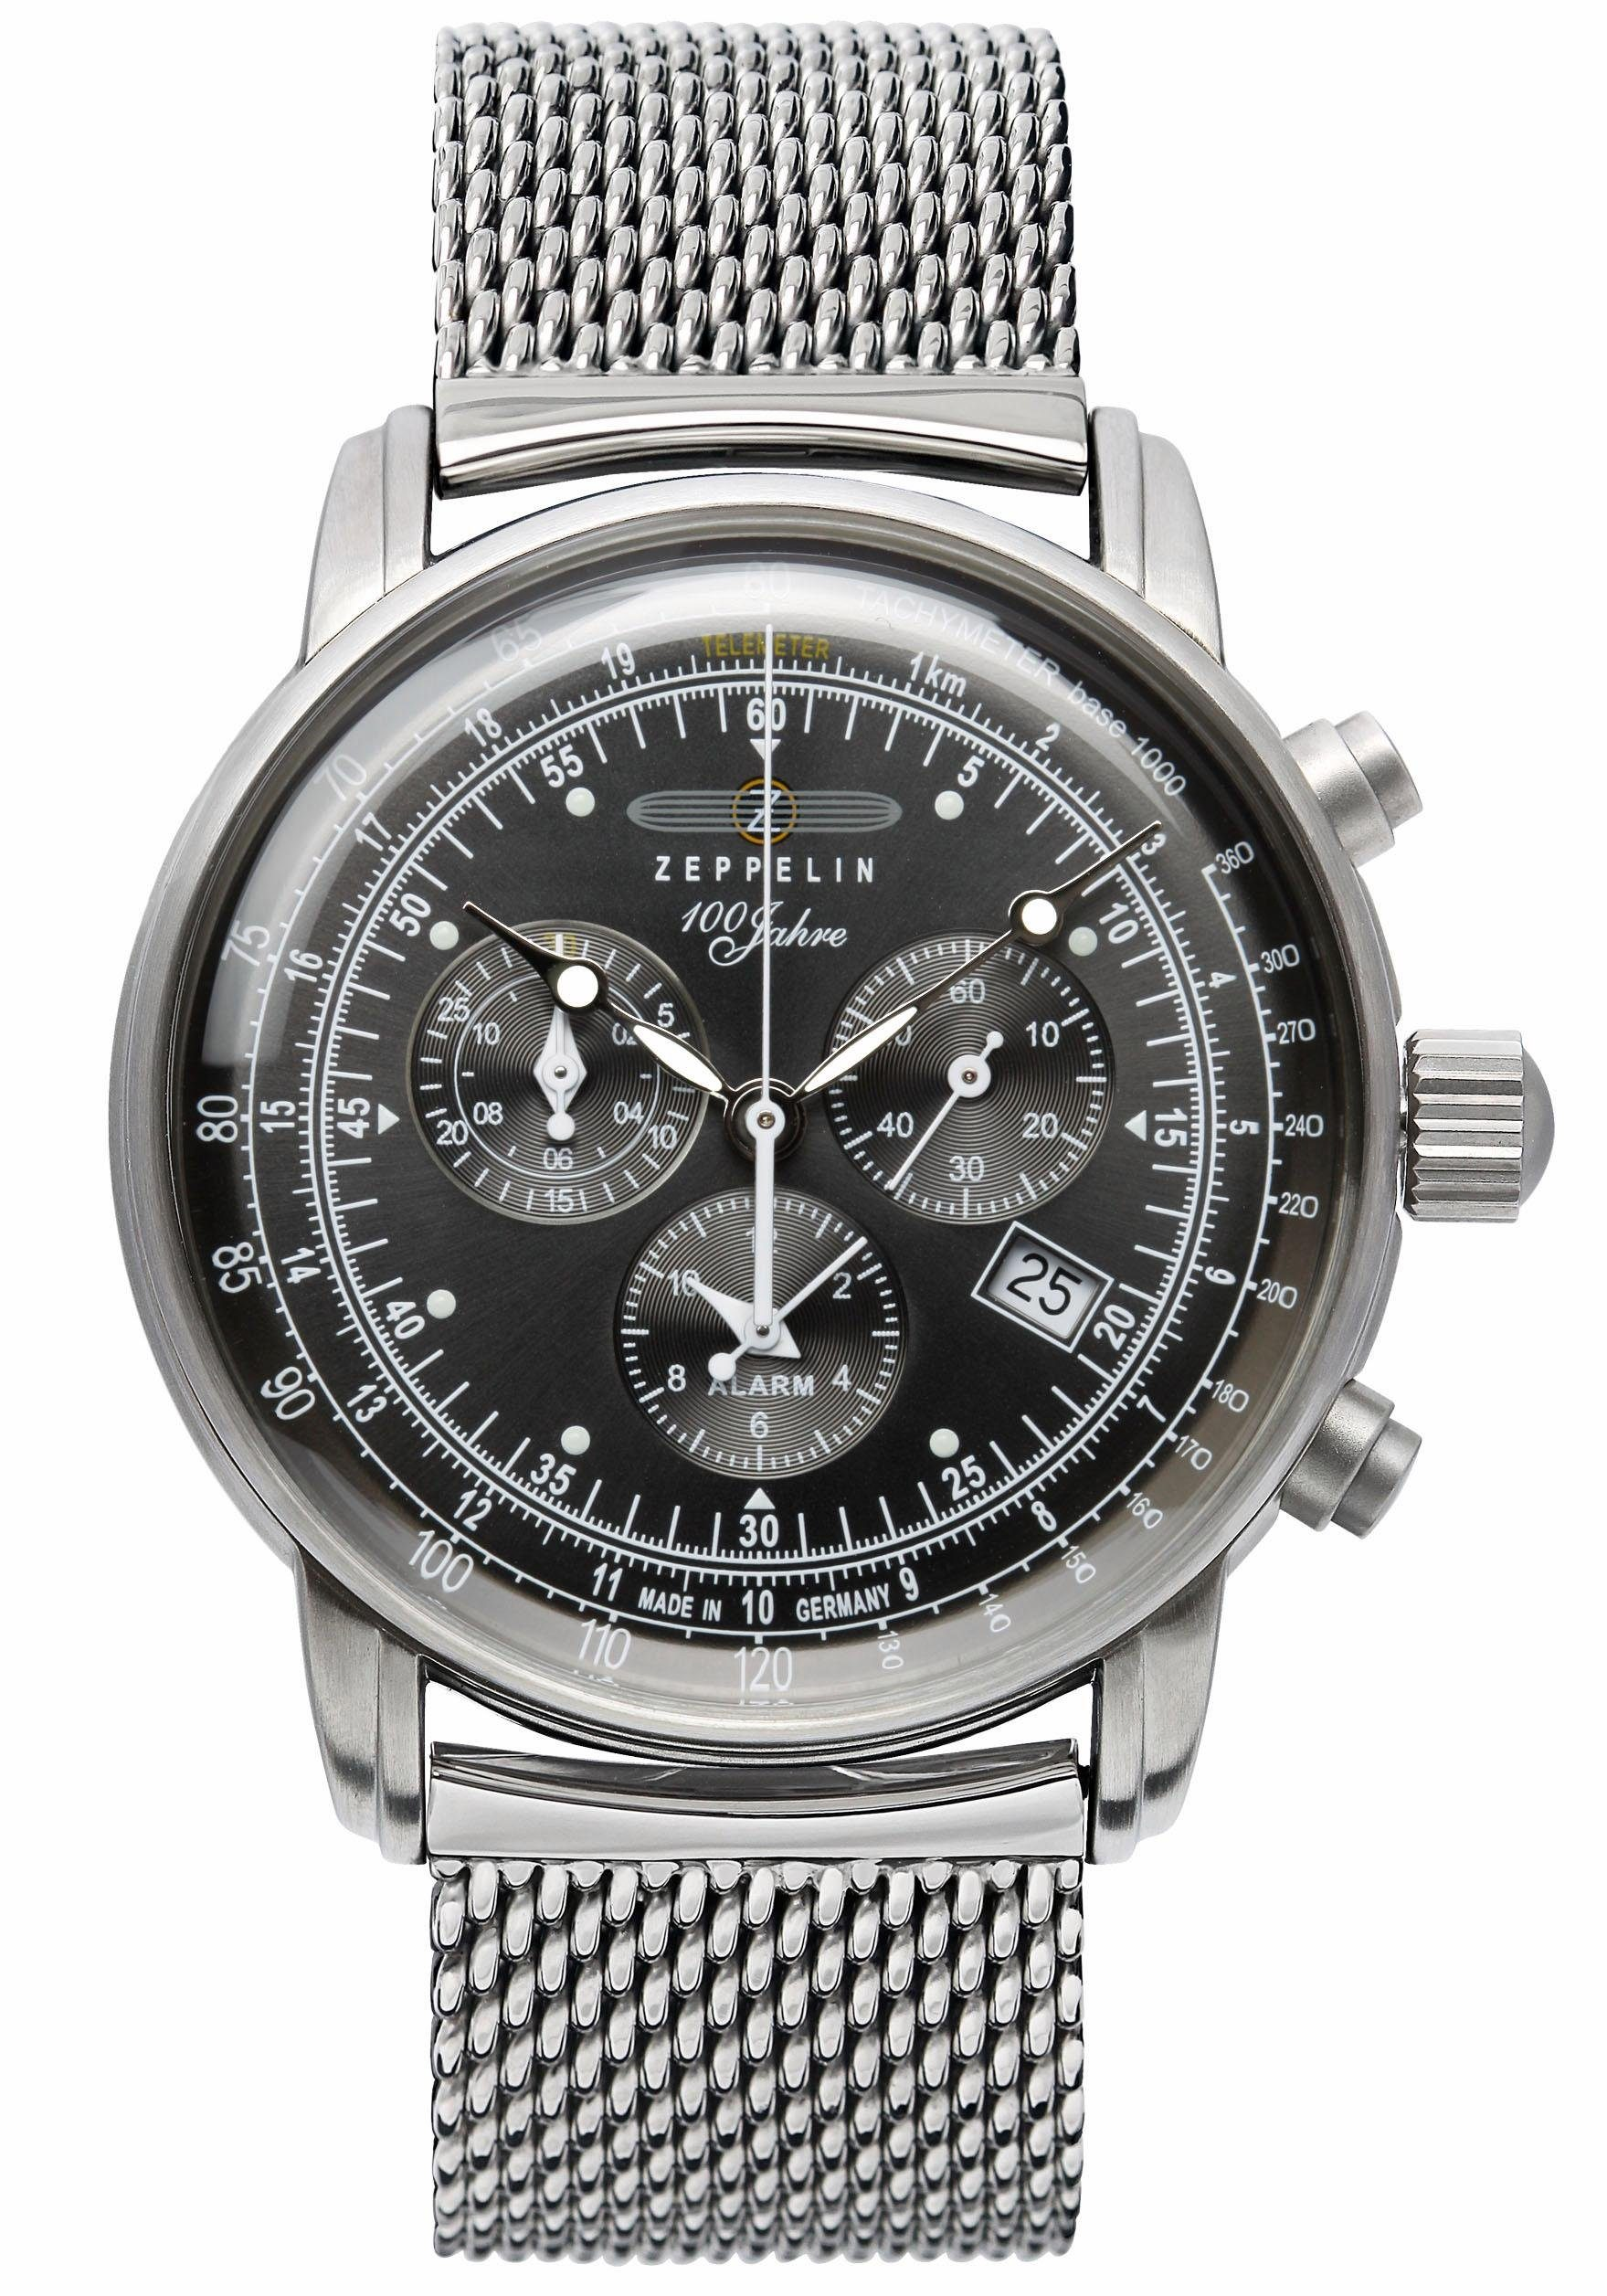 ZEPPELIN Chronograph »100 Jahre Zeppelin, 7680M-2«, Made in Germany